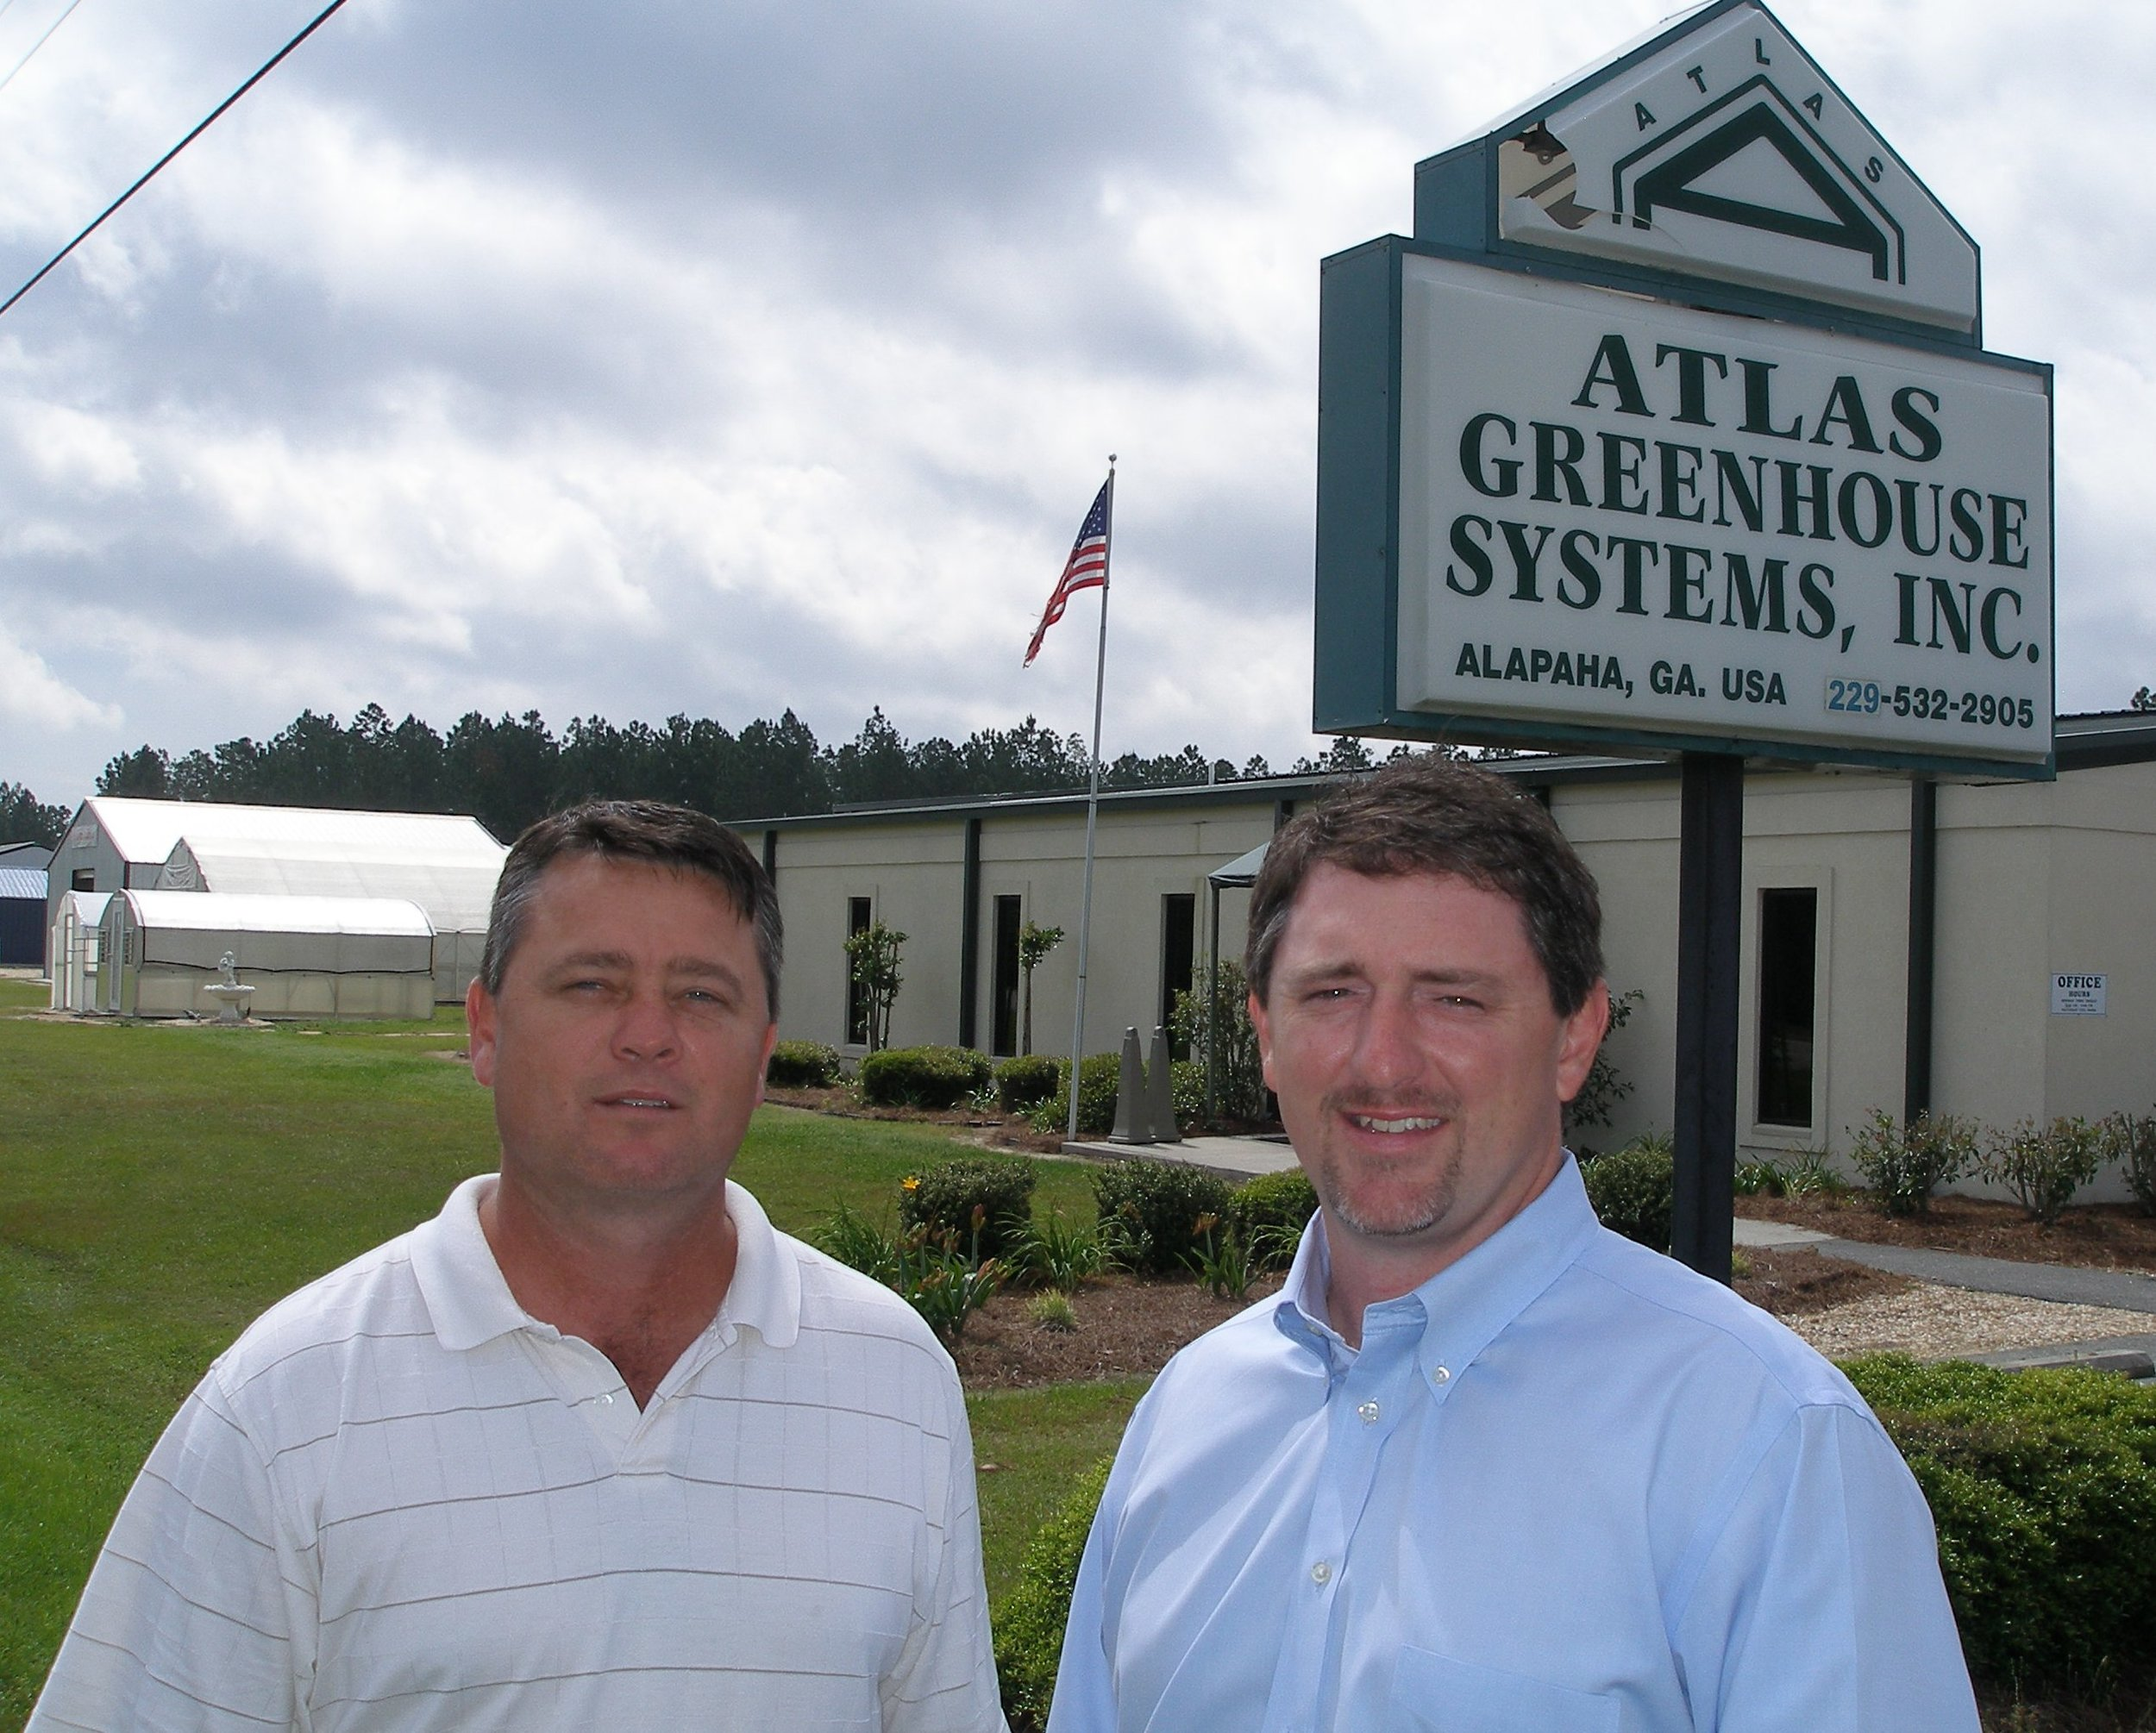 Atlas Greenhouse Systems - Alapha, Georgia.JPG